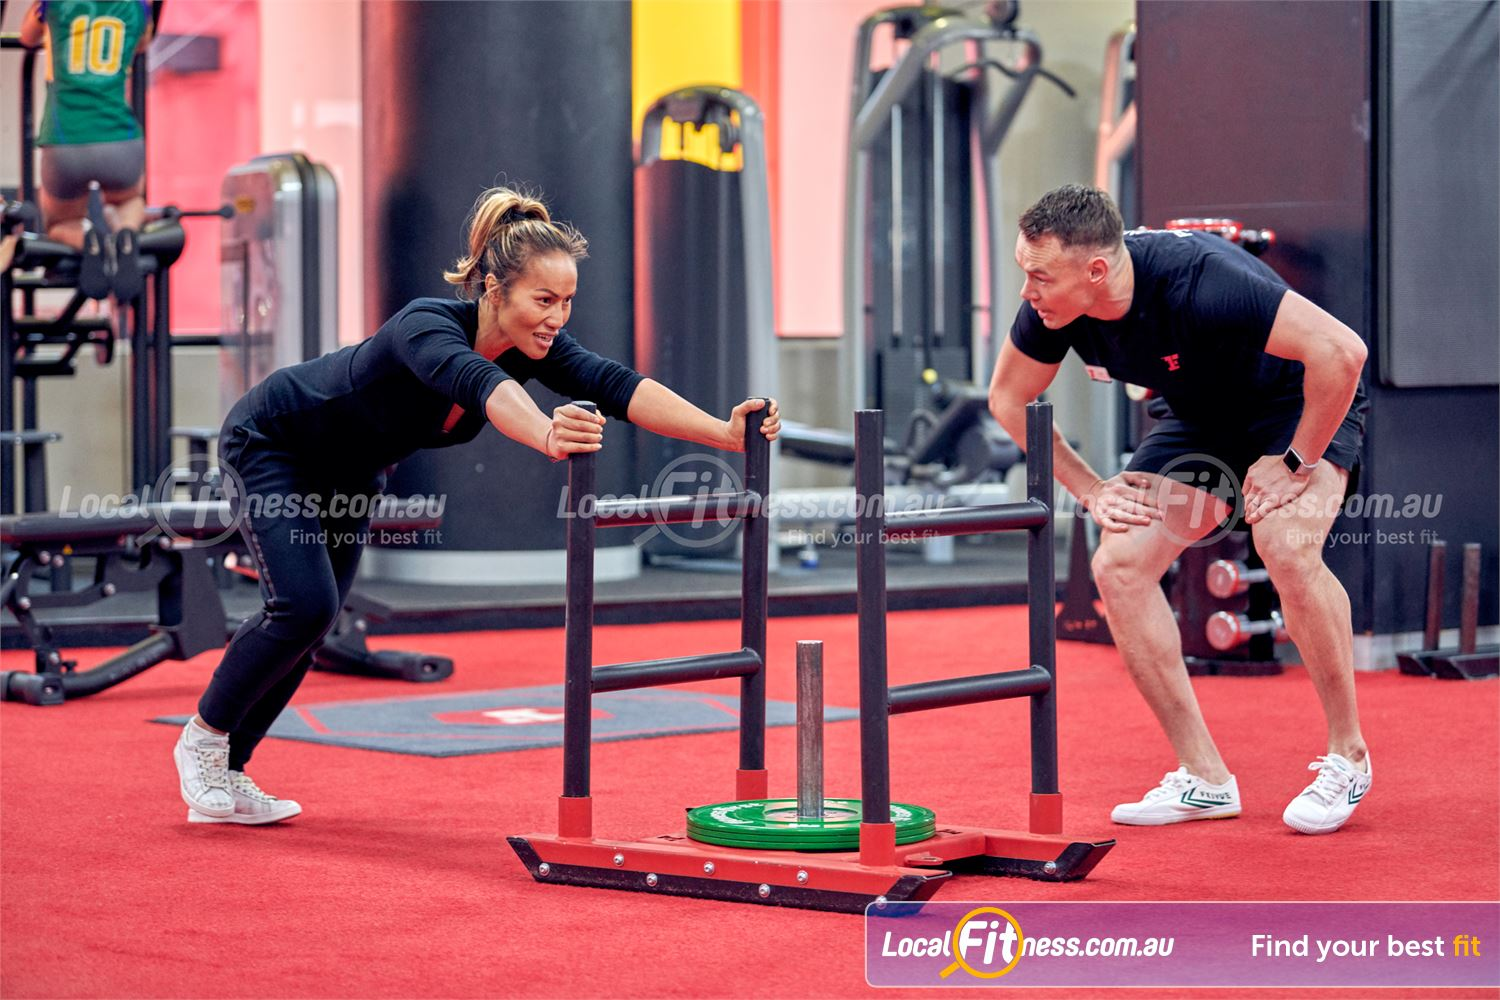 Fitness First Melbourne Central Platinum Melbourne The indoor sled track will help your workouts stay functional.